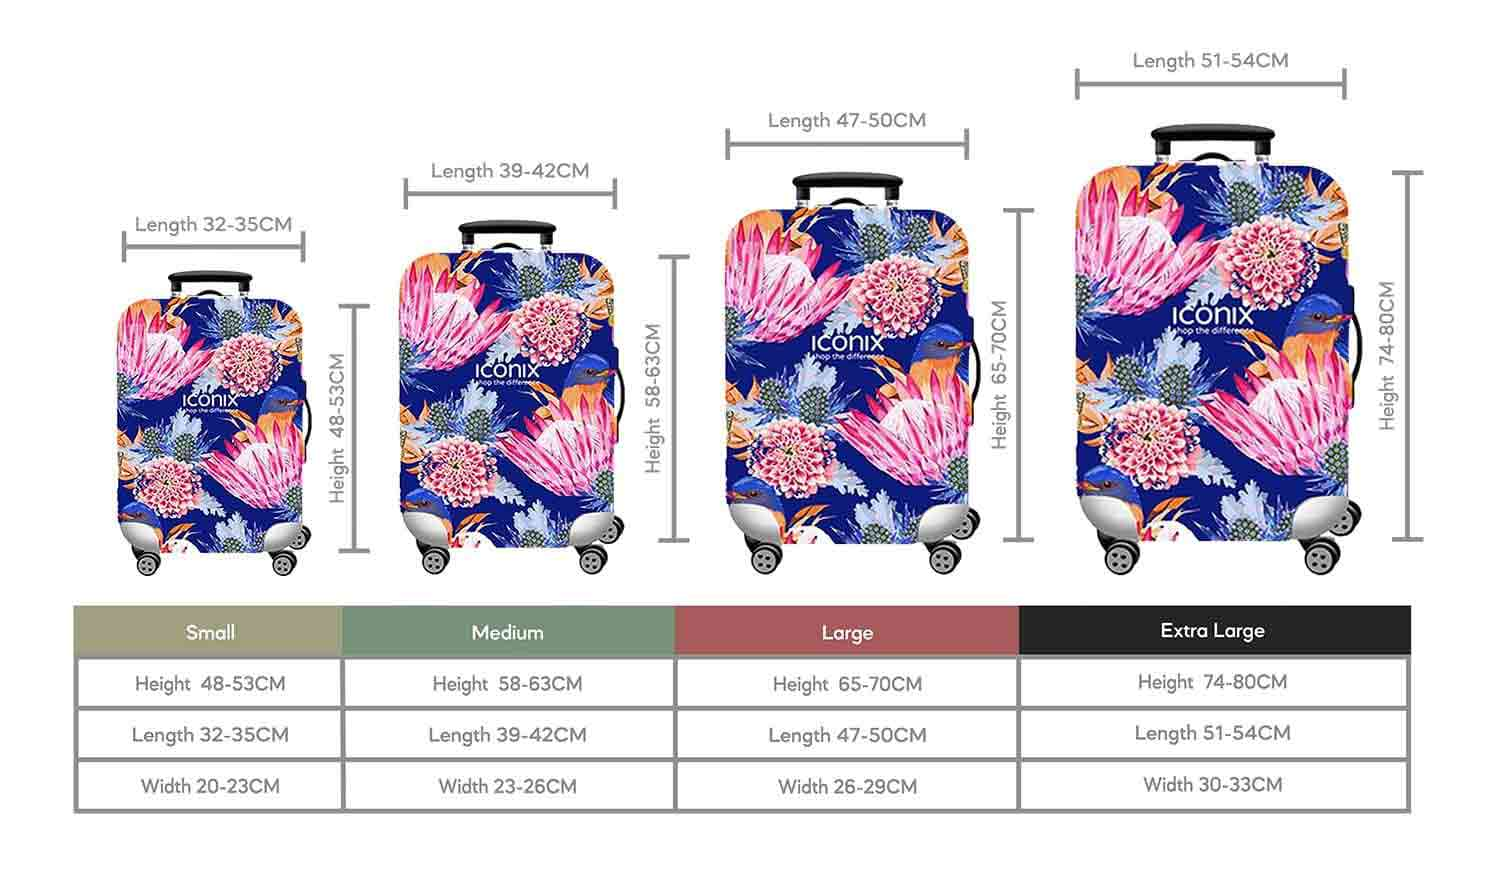 Size Chart for Iconix Power Blue Protea Printed Luggage Protector